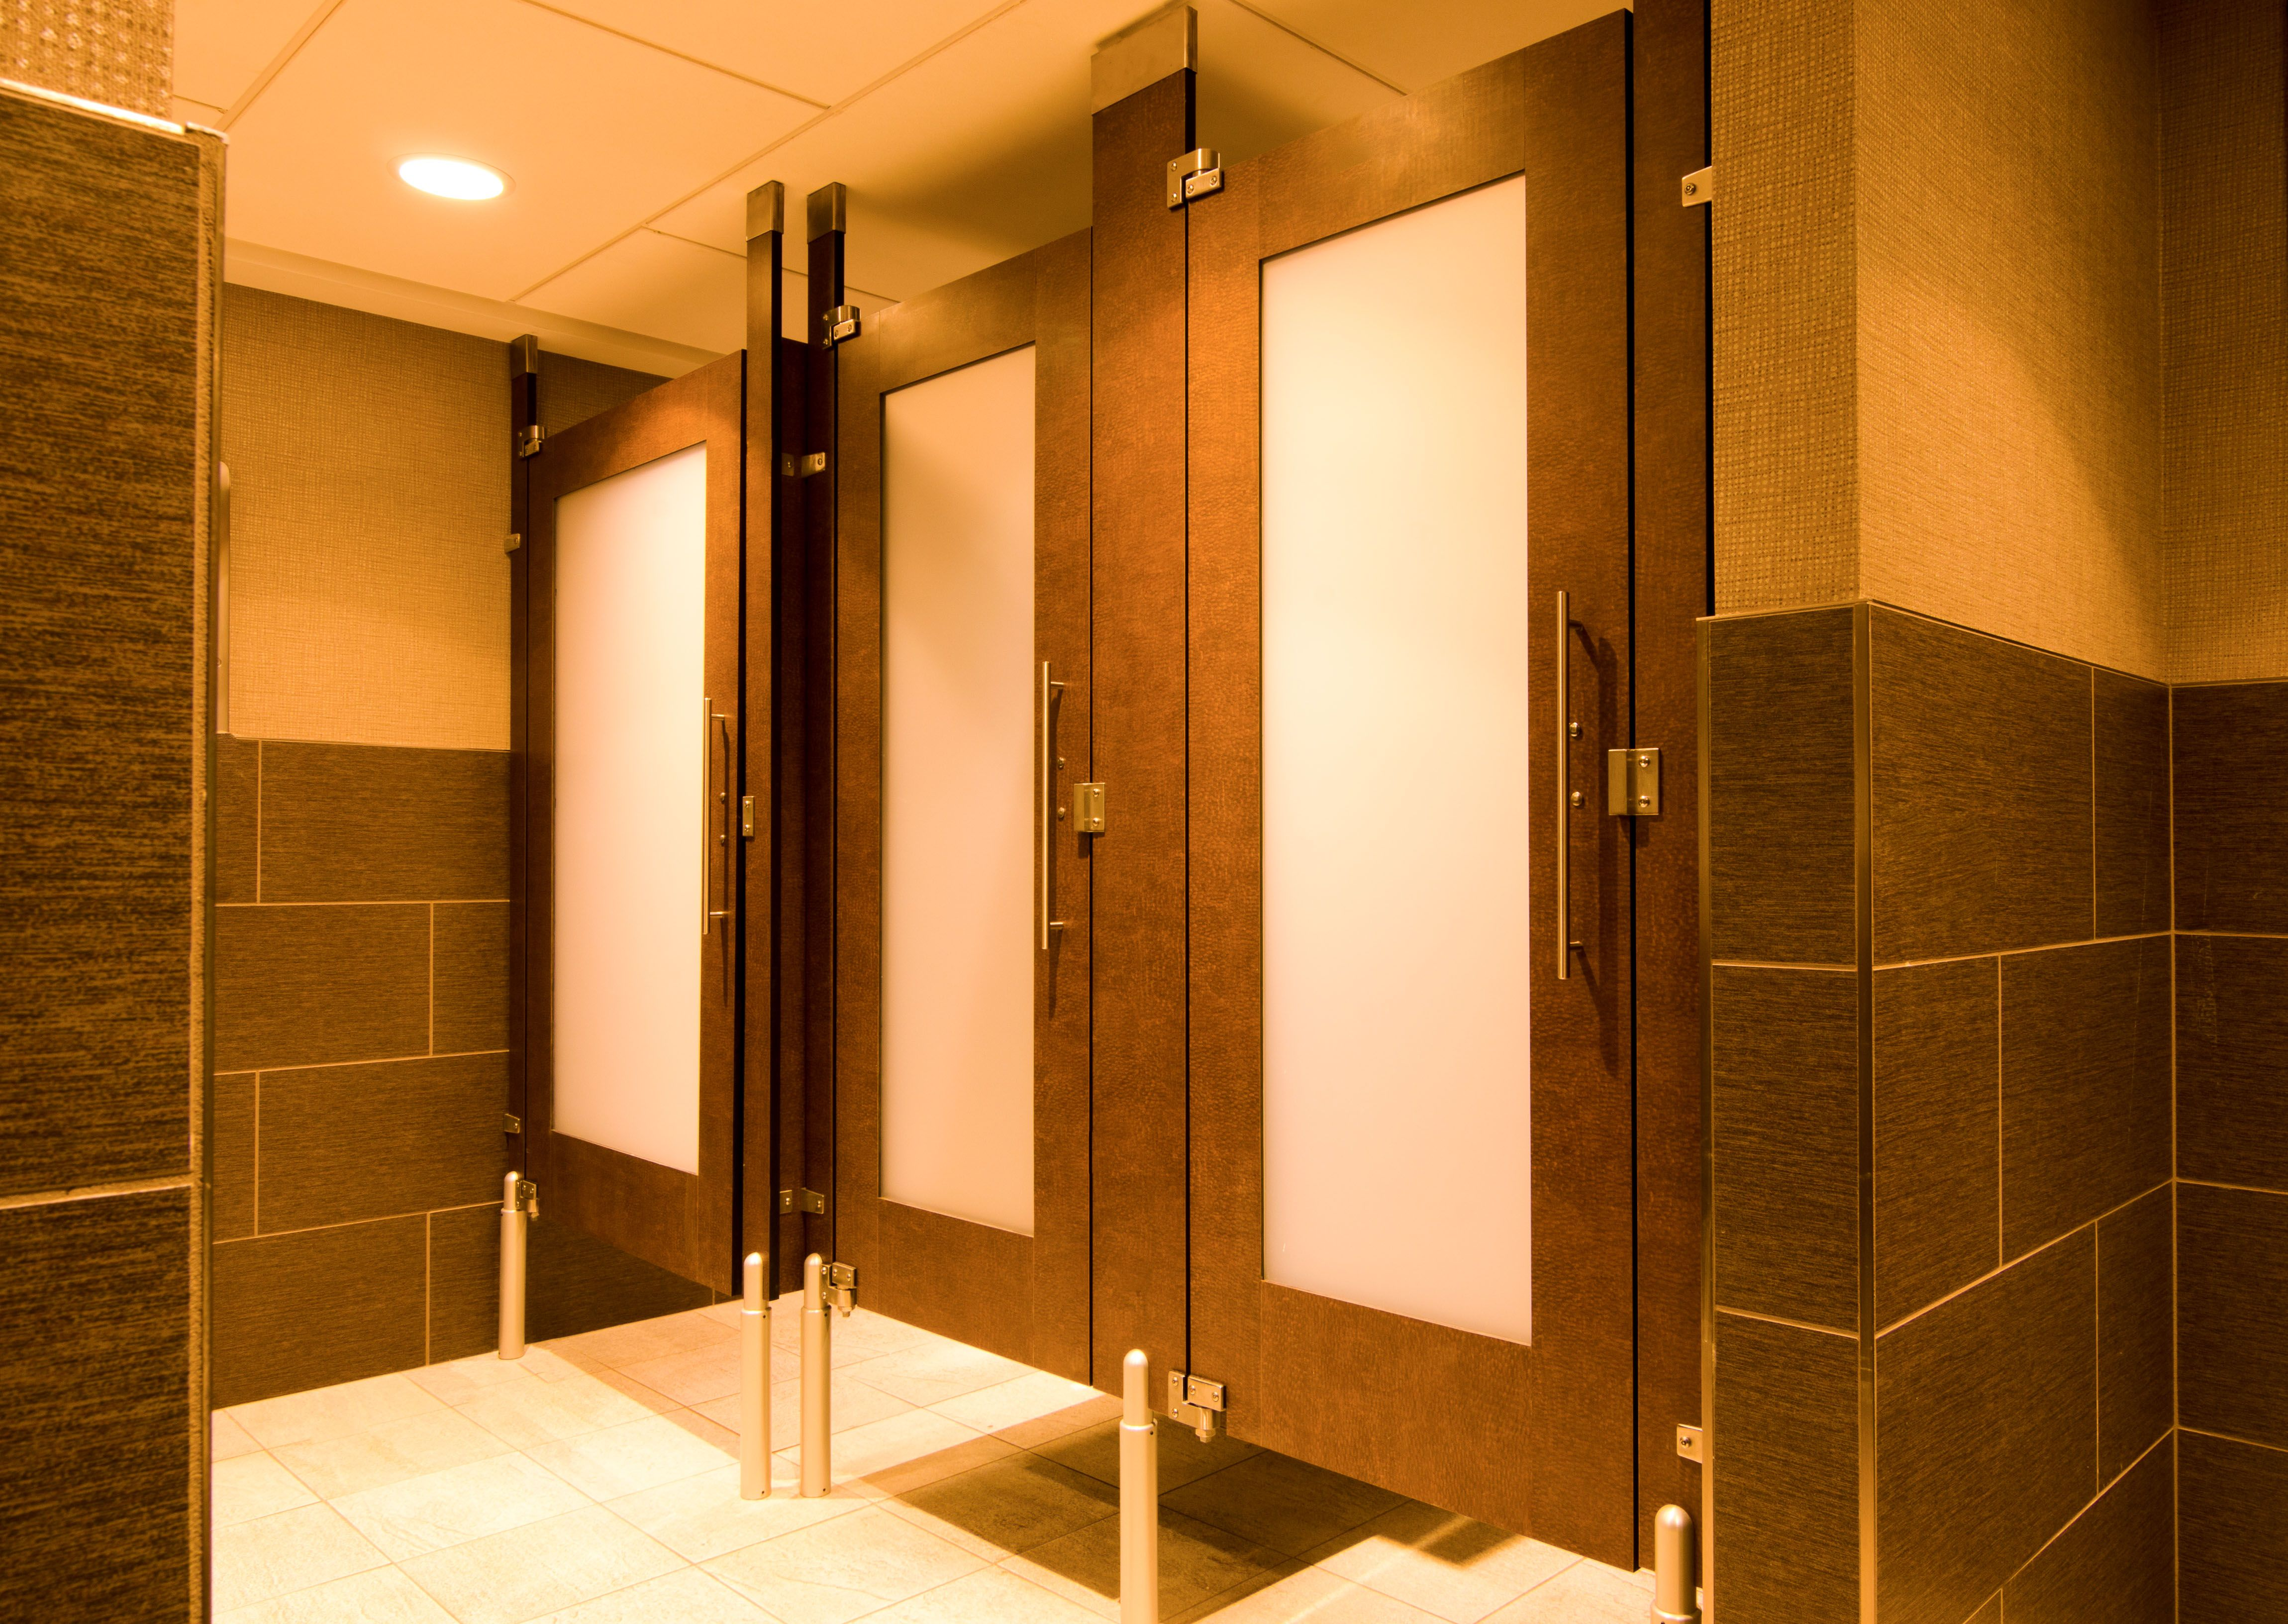 Ironwood Manufacturing Toilet Partitions With Custom Laminate - Laminate bathroom partitions